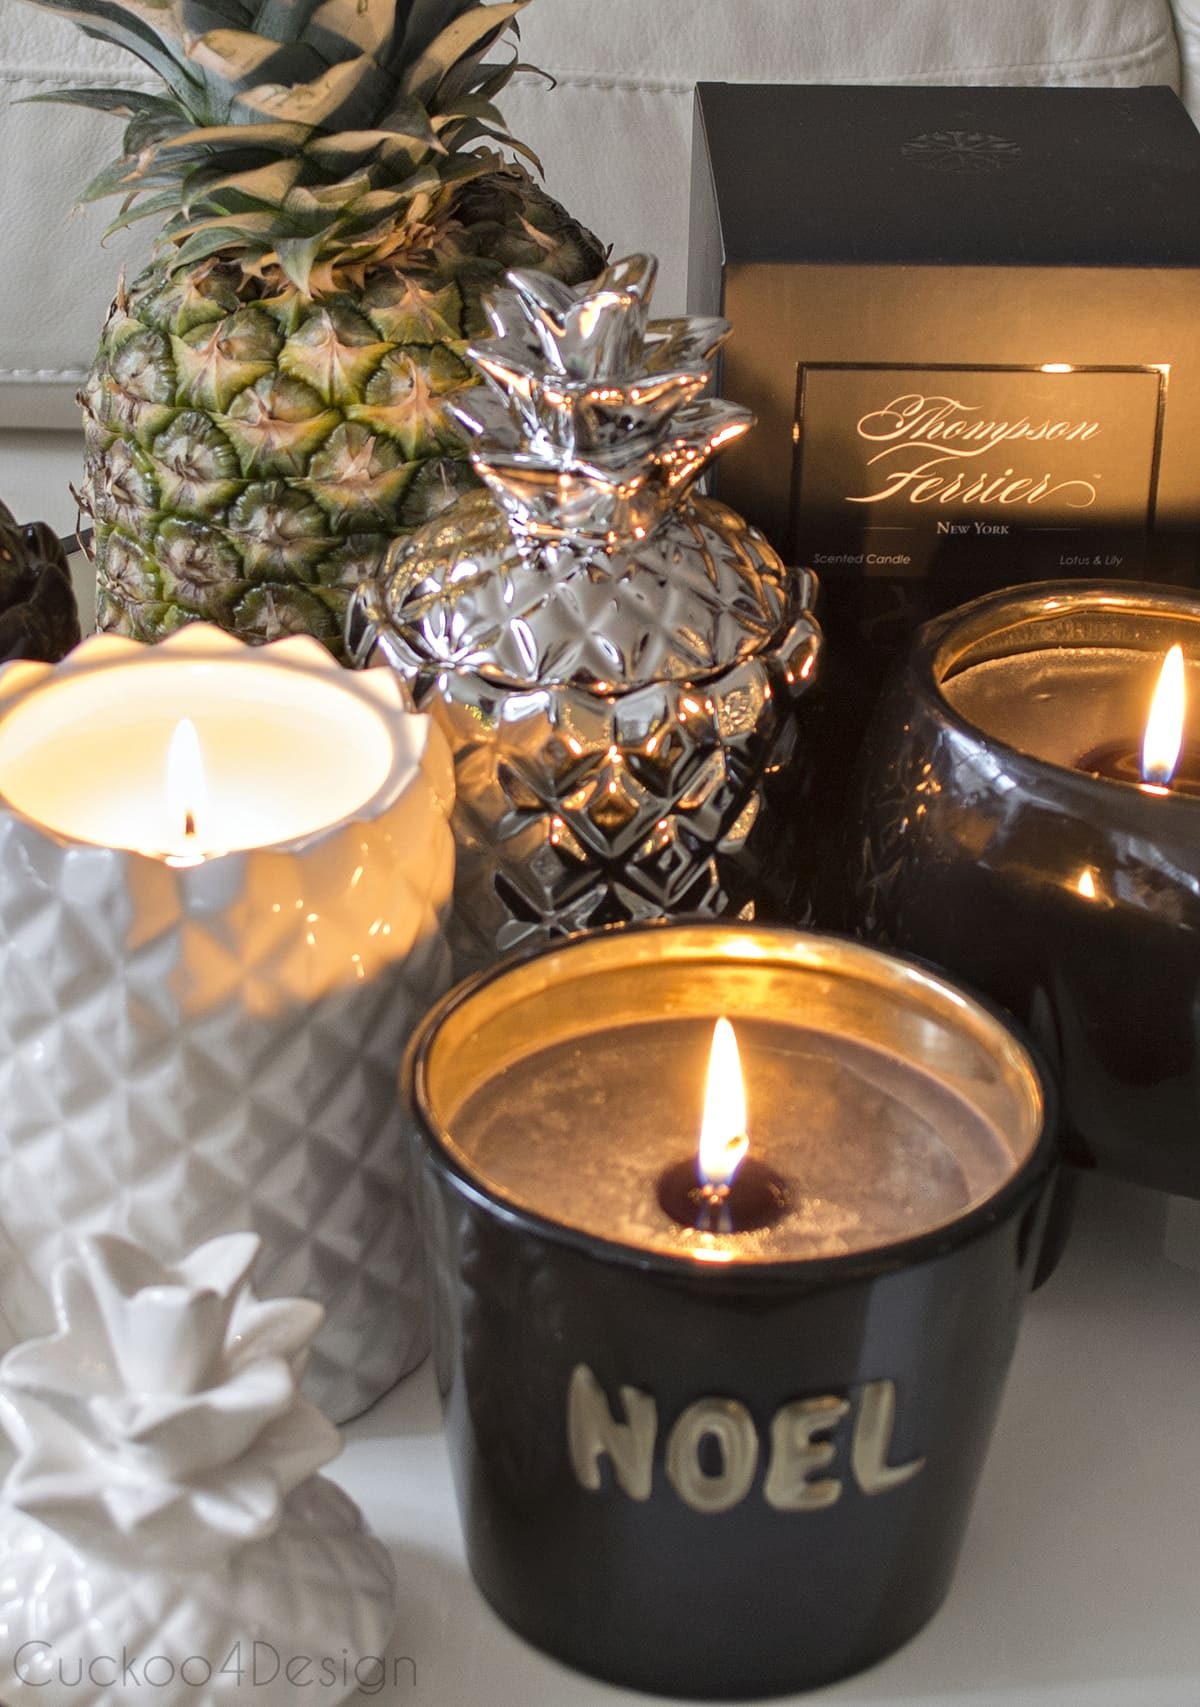 Elegant Thompson Ferrier candles